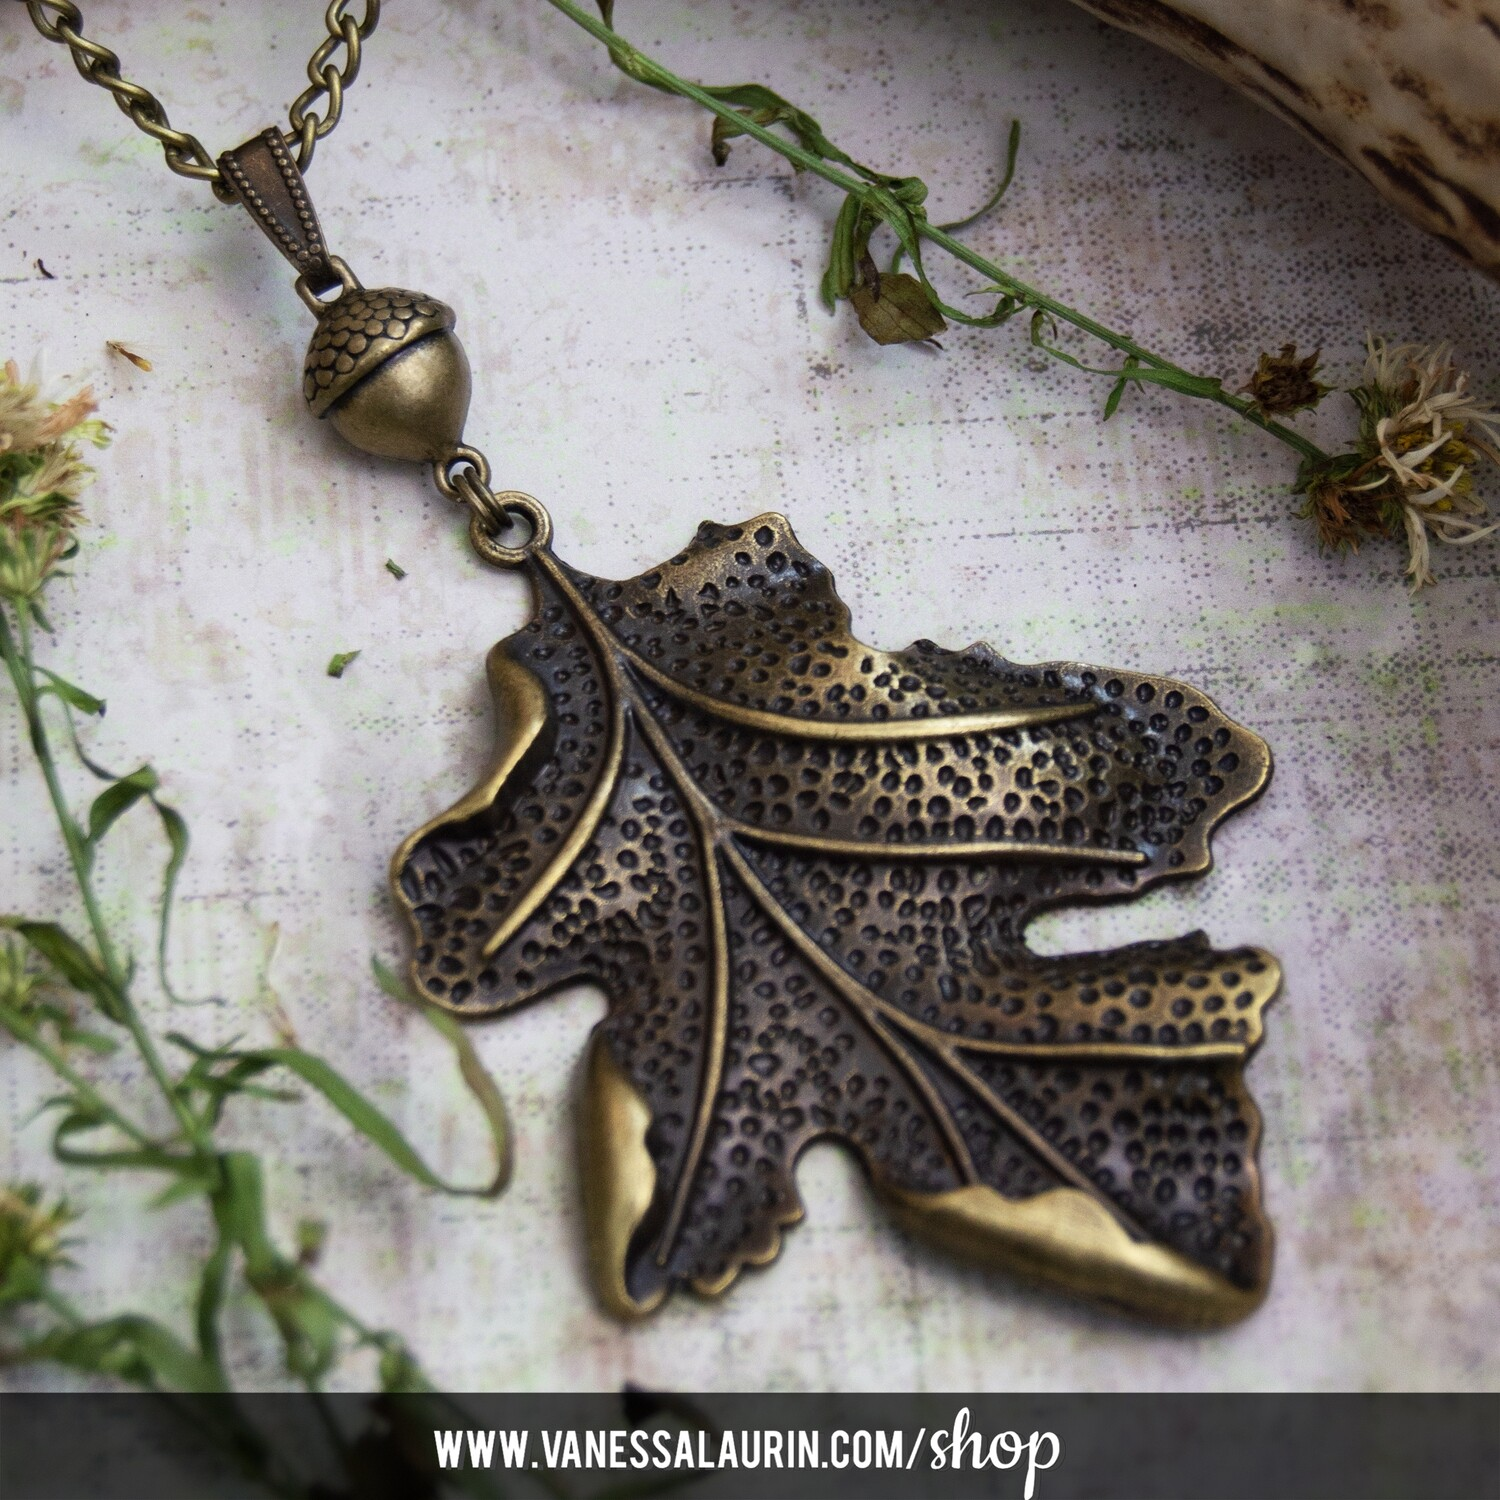 Woodland Whimsy Collection: Acorn and oak leaf pendant